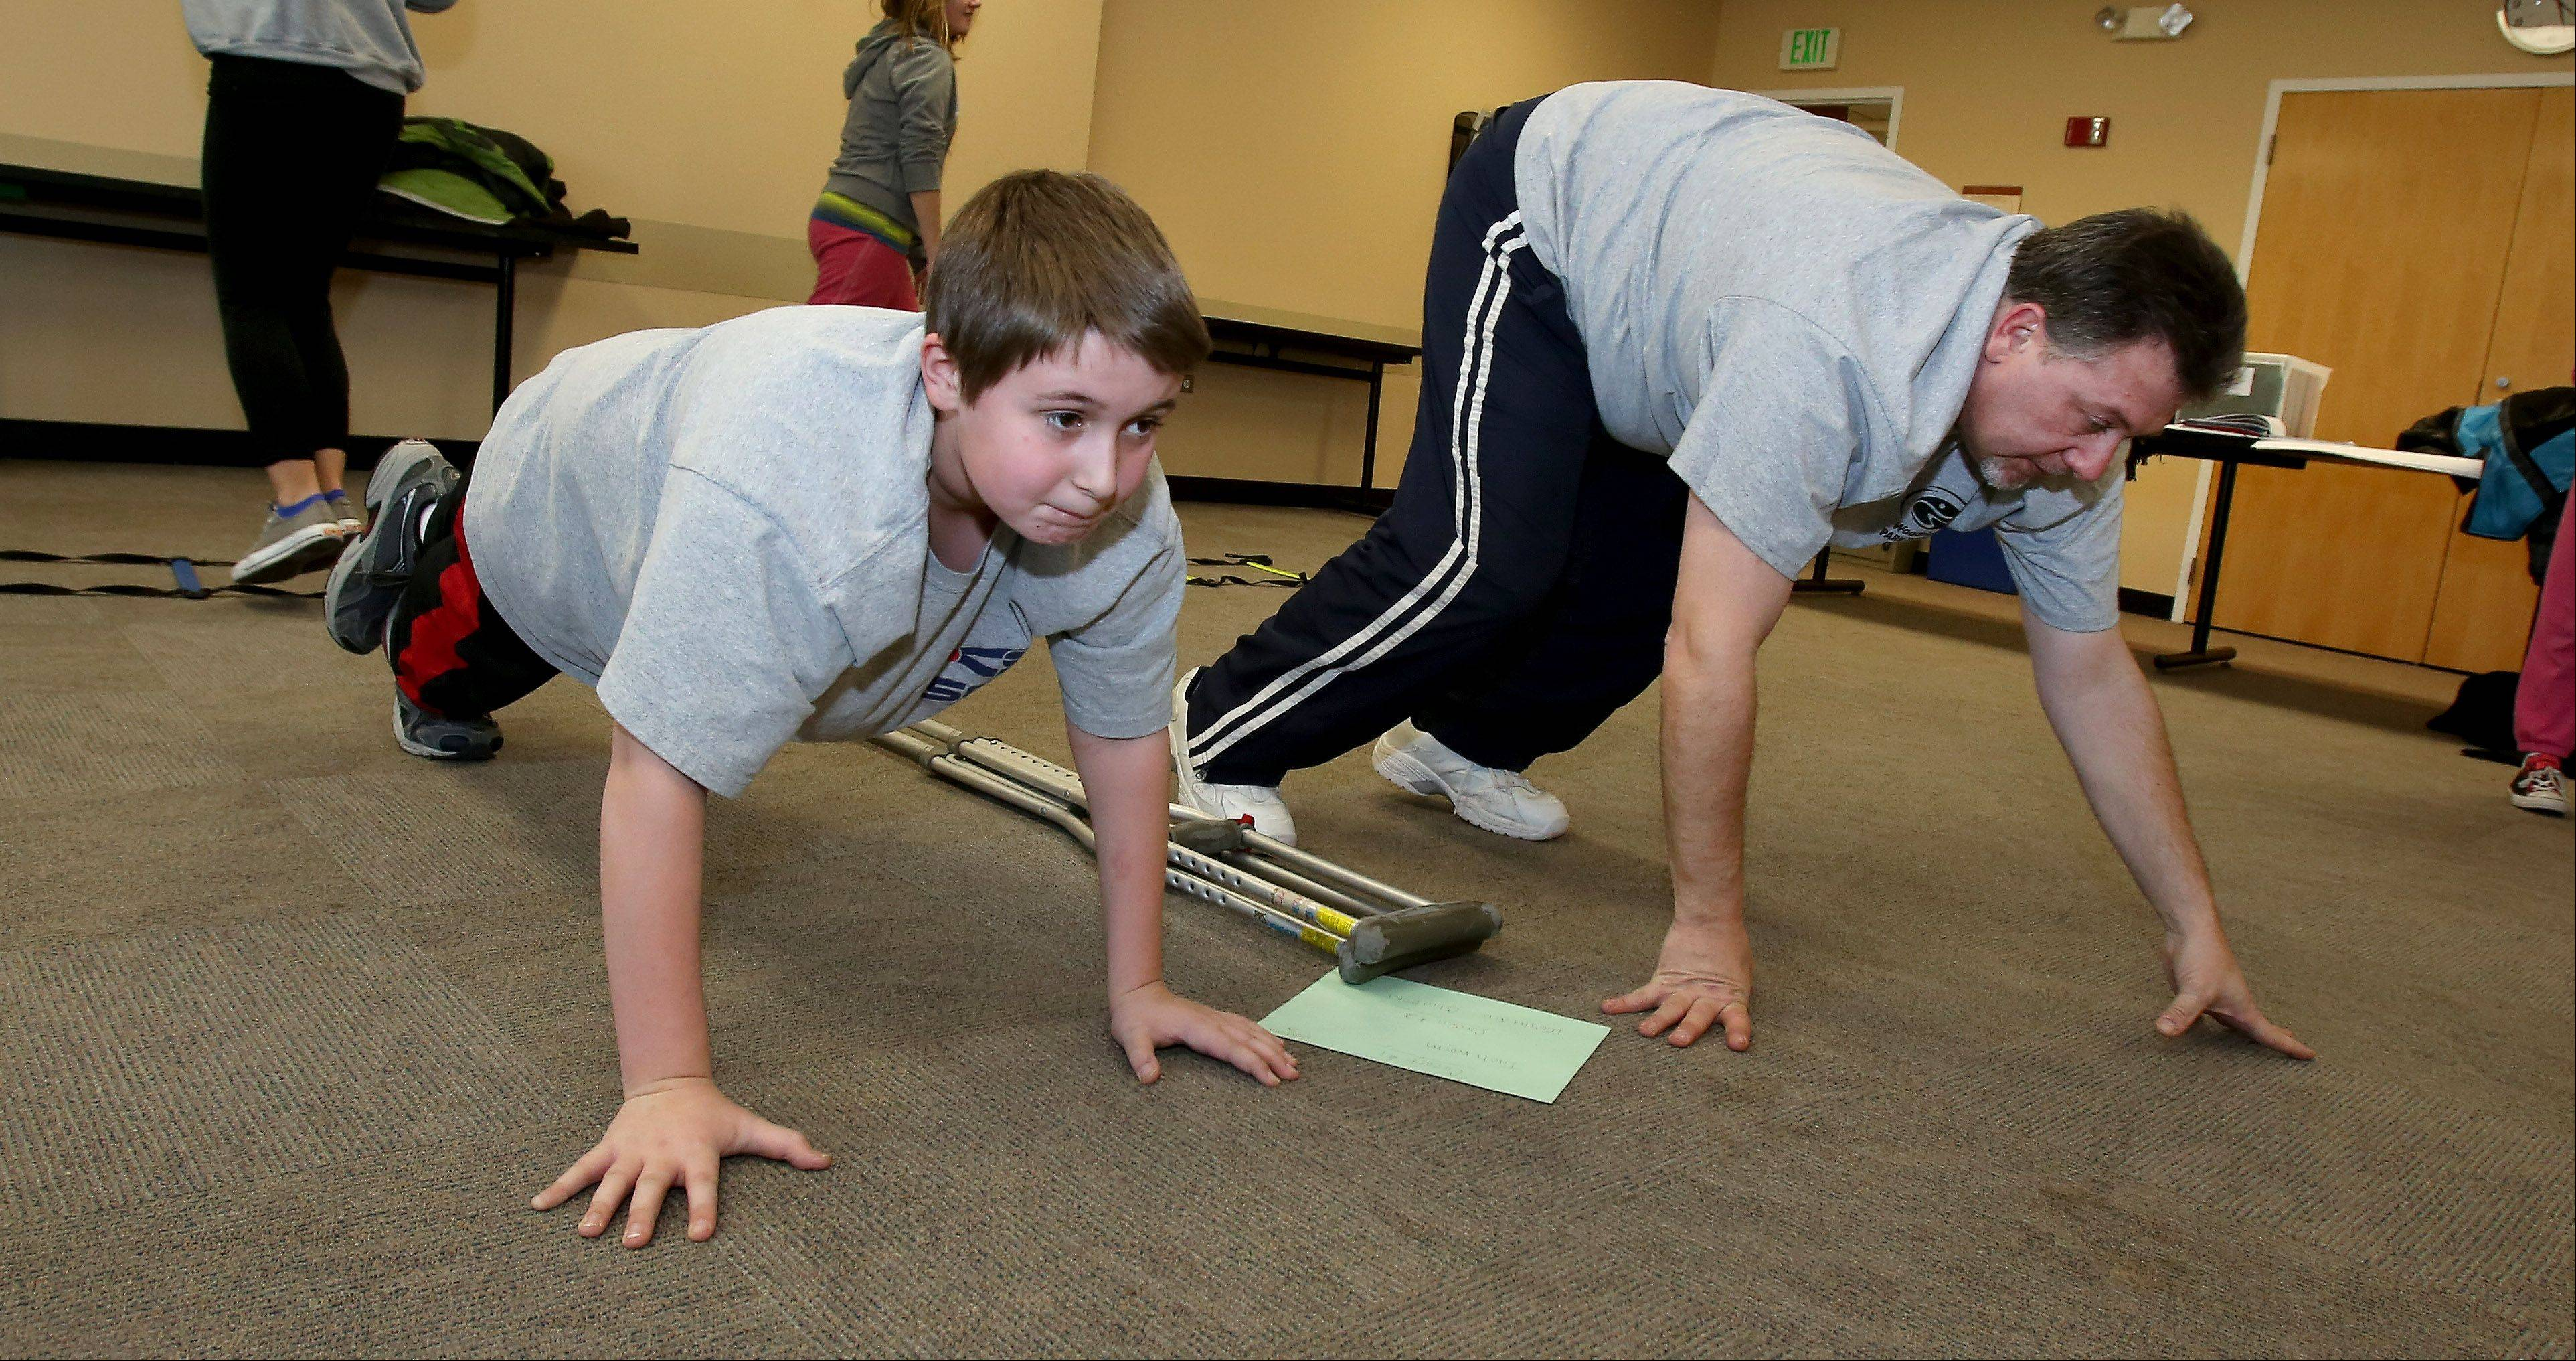 Marcus Wright, 10, of Westmont, works out with his mother, Dio, under the guidance of Jennifer Tewell, program coordinator and lifestyle coach with ProActive Kids. The Wright family is participating in the ProActive Kids program offered for the first time this year at the Advocate Good Samaritan Health and Wellness Center in Downers Grove.